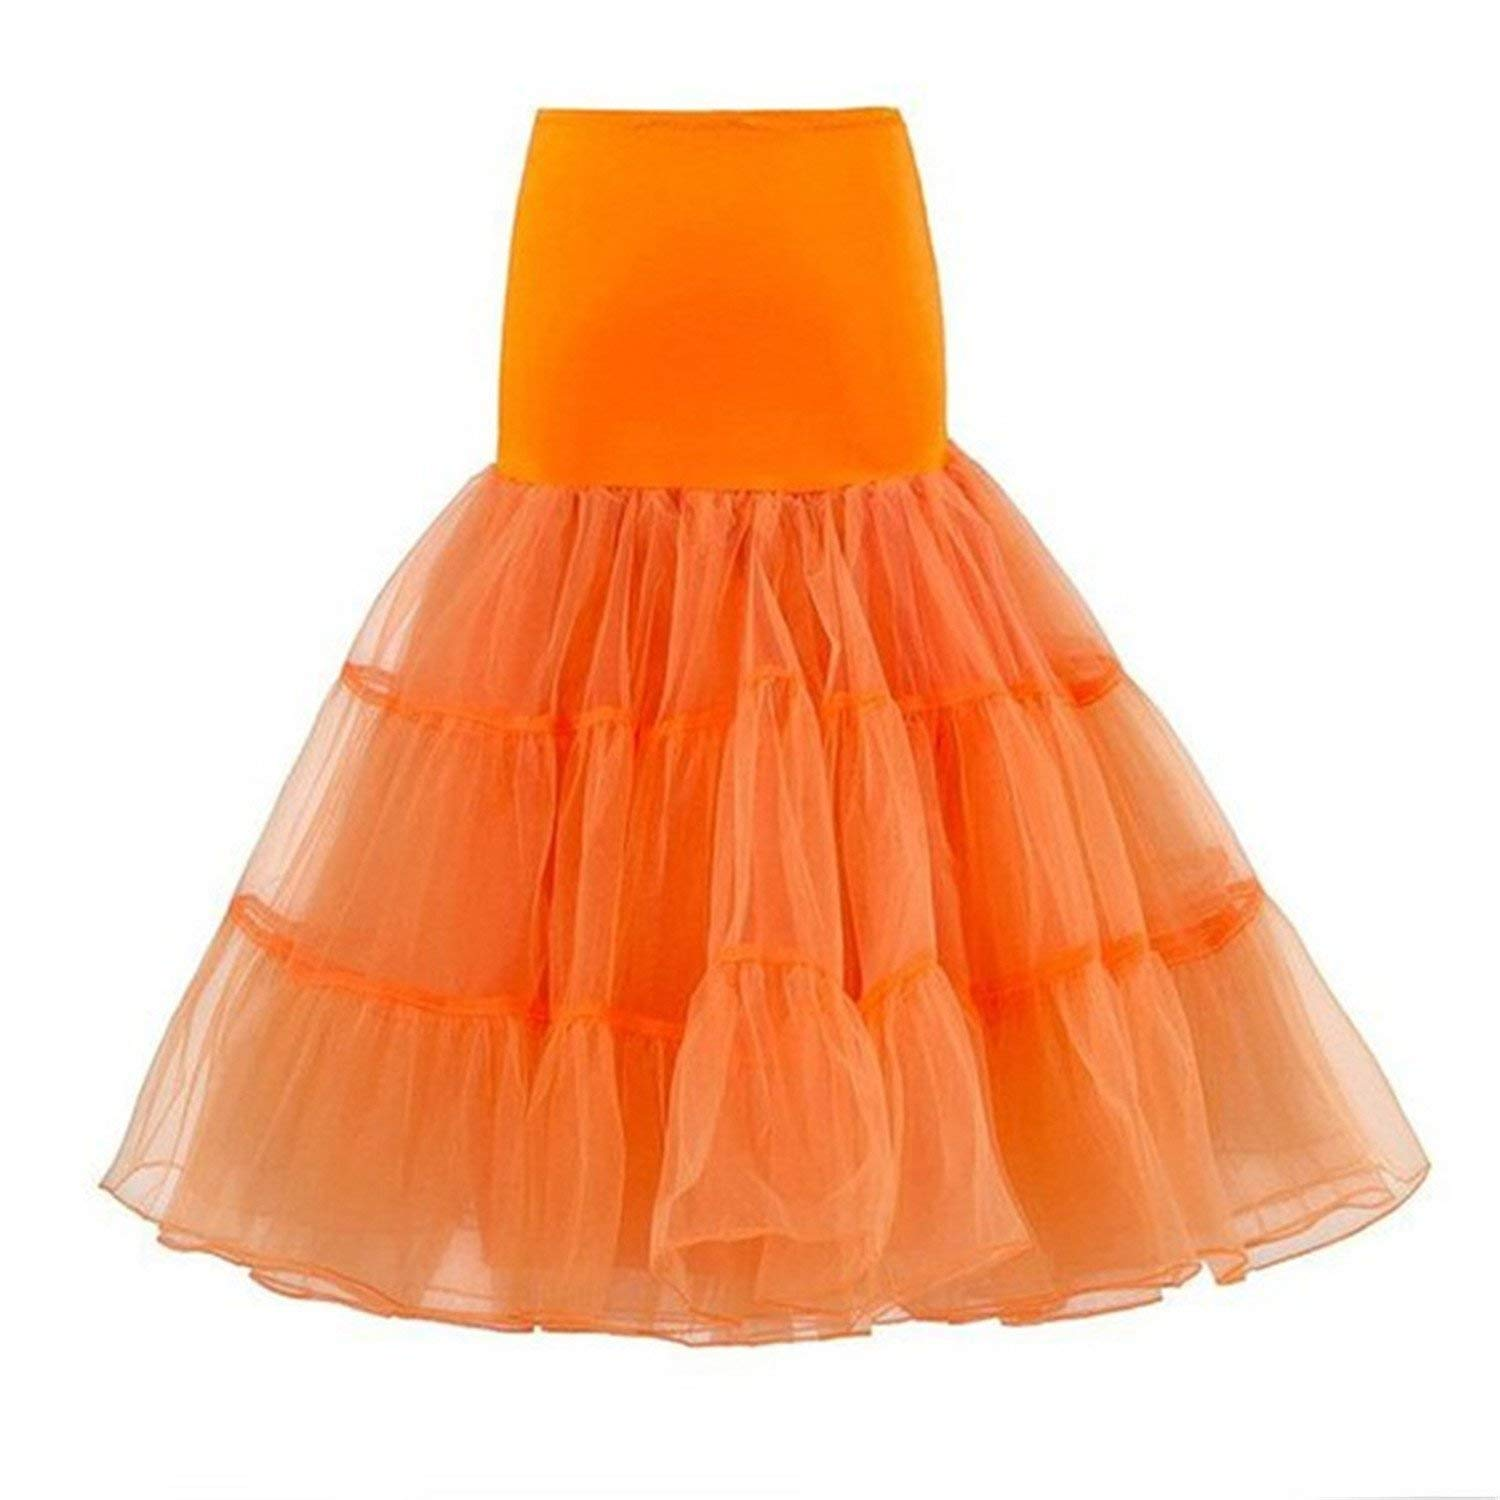 62a2e8850c38 Cheap Petticoat For Women, find Petticoat For Women deals on line at ...